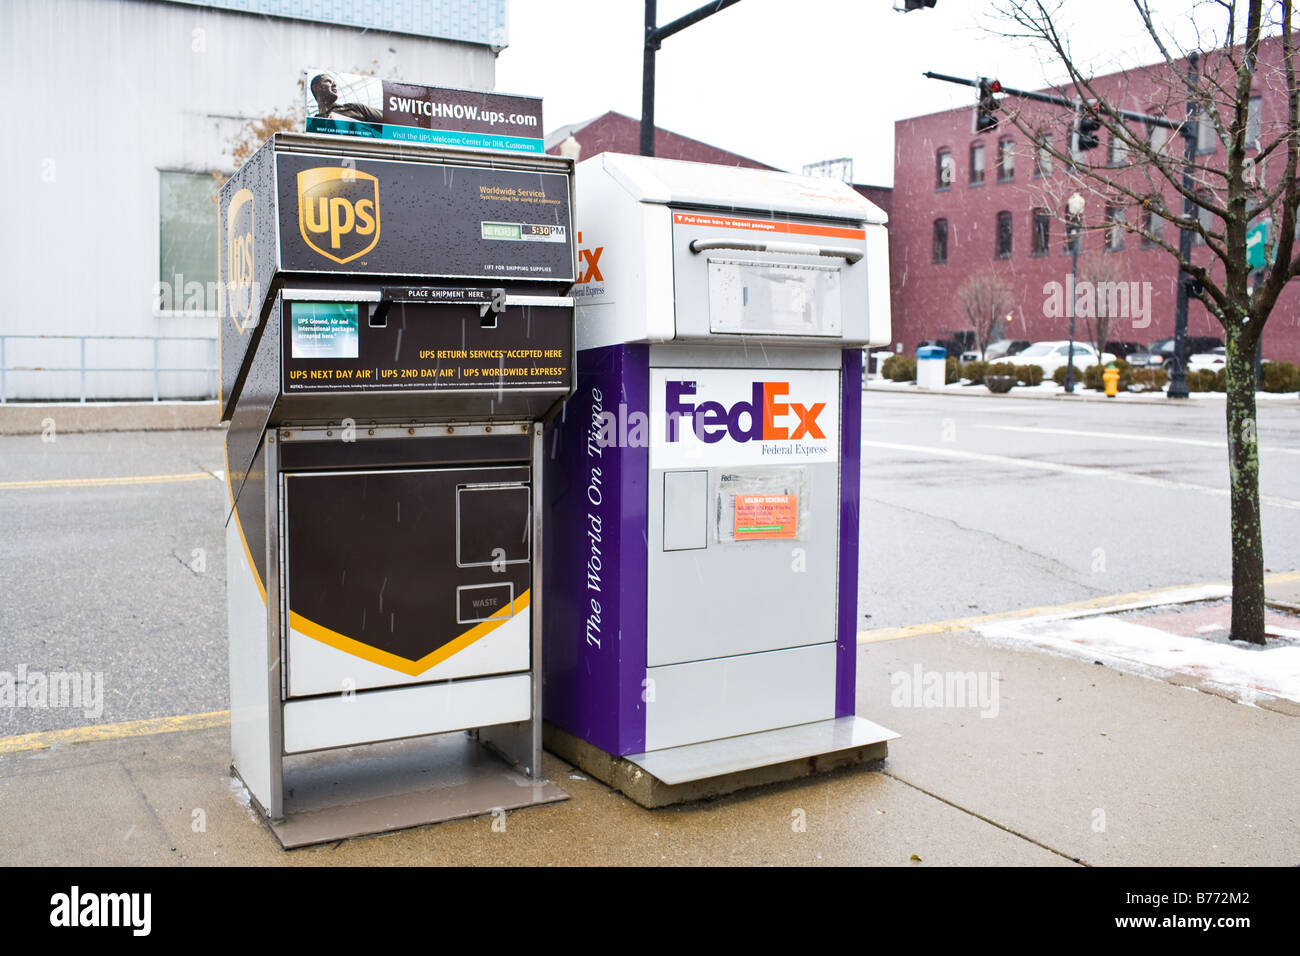 Cost of color printing at fedex - A Fedex And Ups Pick Up Box Sit Side By Side On A Street Corner Download Image Fe Fedex Color Printing Cost